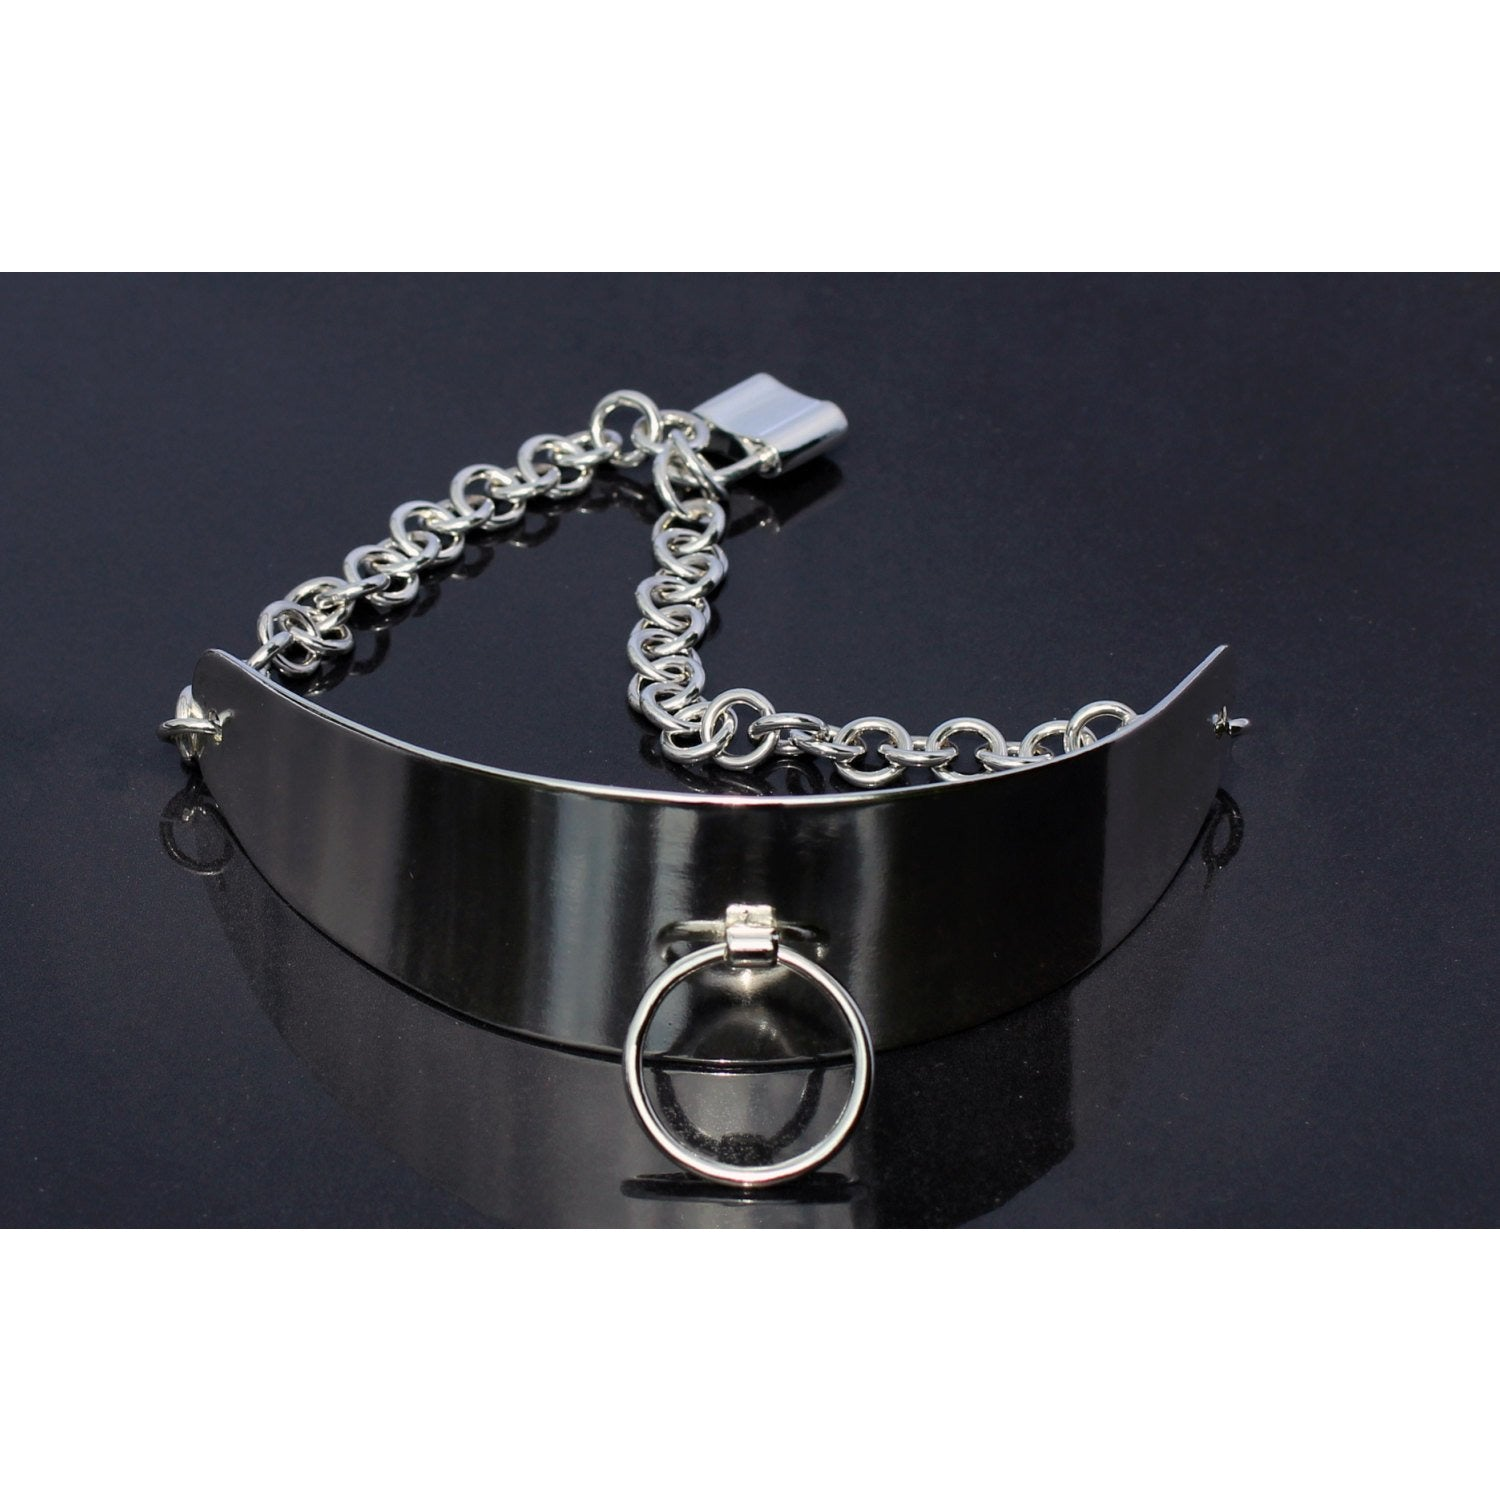 Sterling Silver Collar-BDSM Semi Posture Style-Wide Adjustable Collar-Padlock Clasp